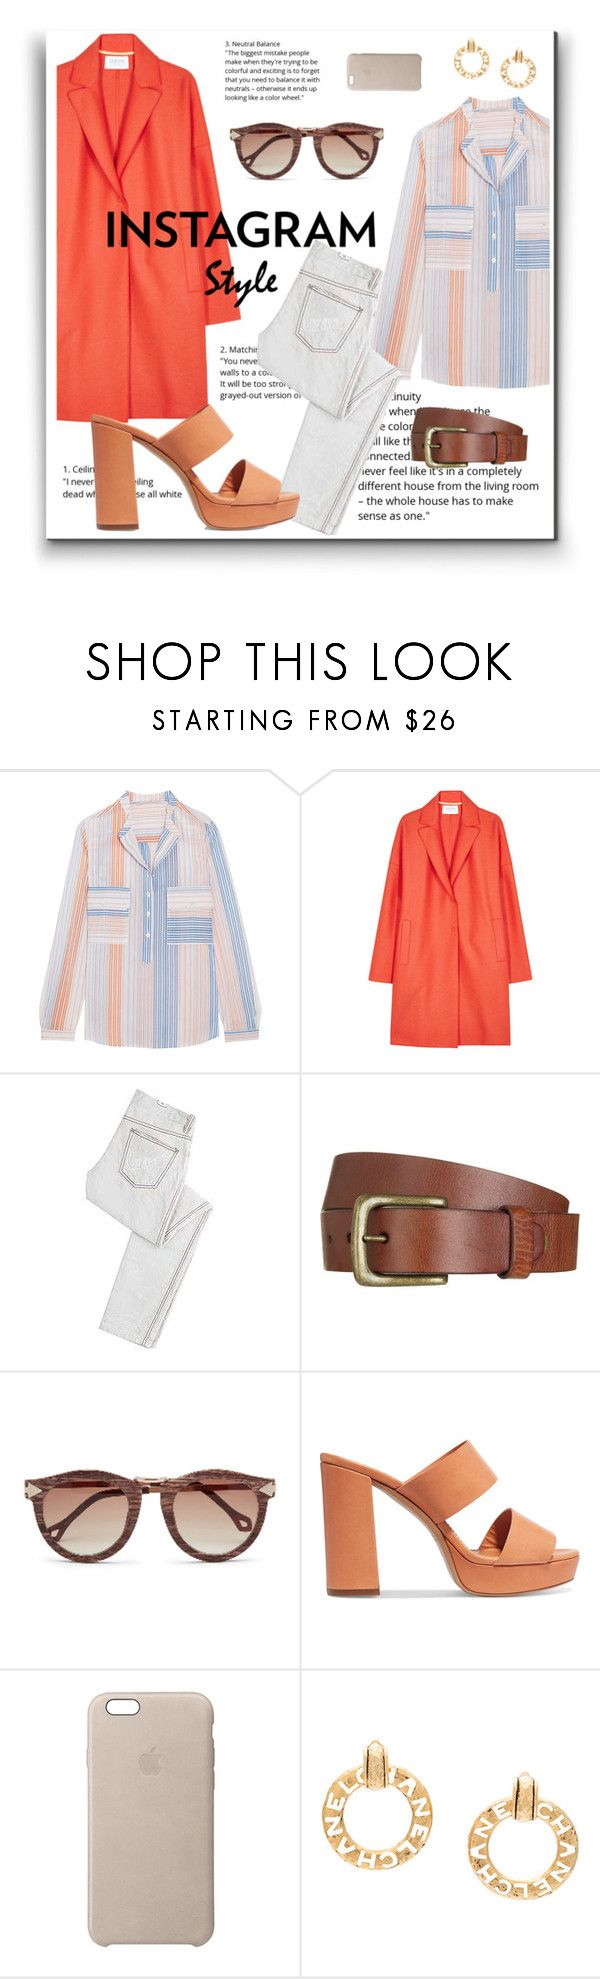 """""""insta-ready"""" by heloisacintrao ❤ liked on Polyvore featuring STELLA McCARTNEY, Harris Wharf London, McQ by Alexander McQueen, Will Leather Goods, Mansur Gavriel, Apple, Chanel, instagram, 60secondstyle and PVShareYourStyle"""